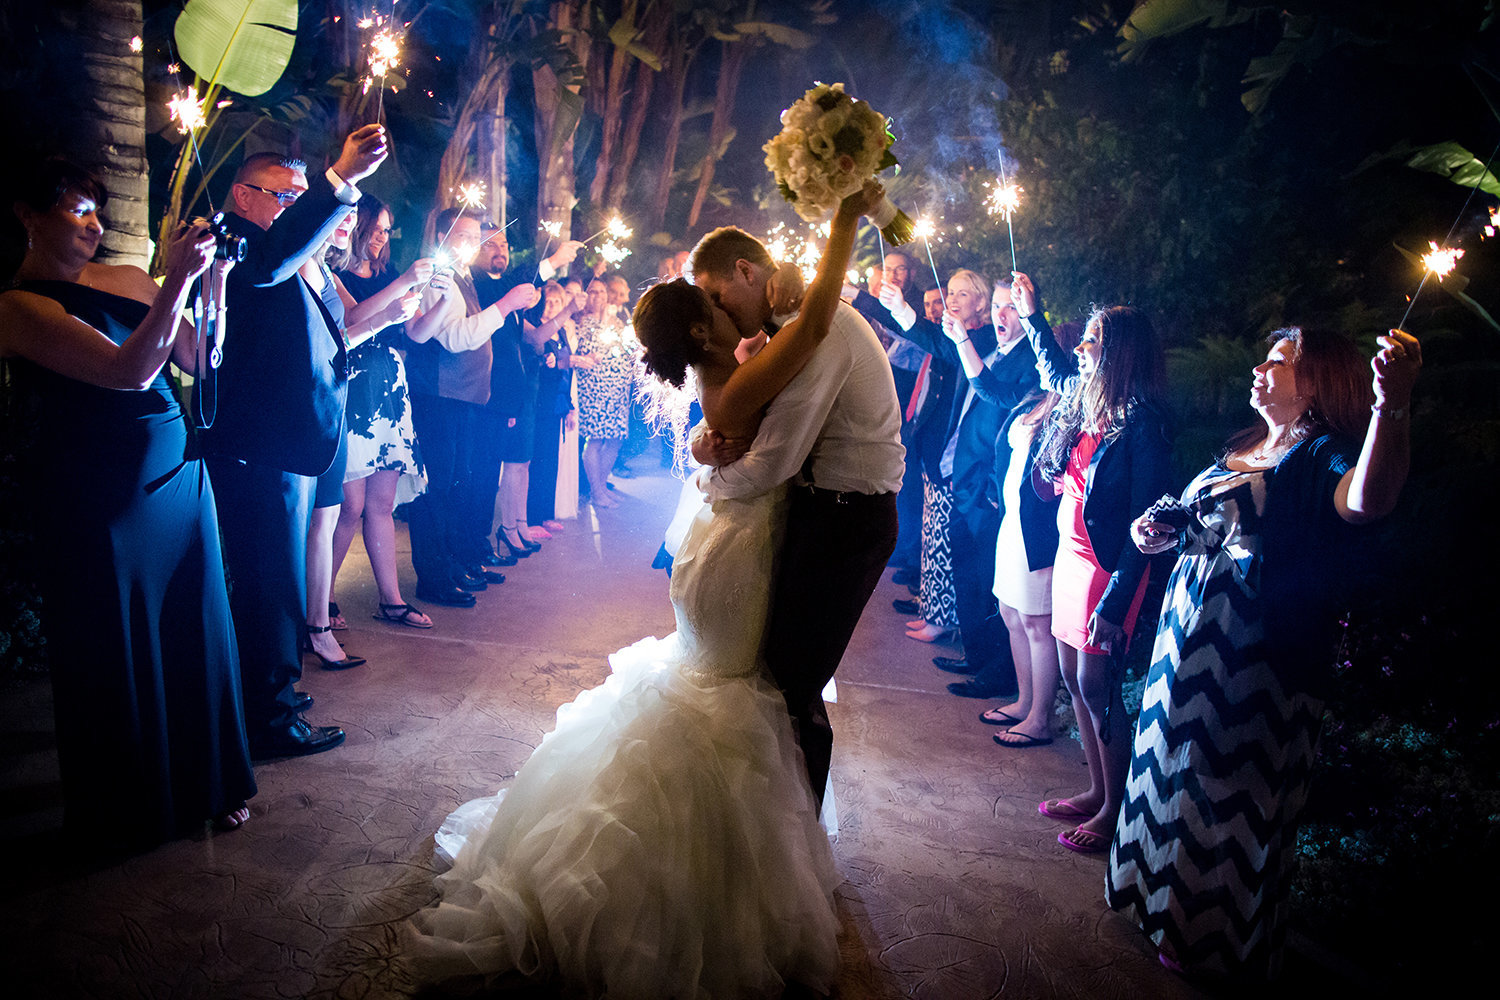 Grand Tradition wedding photos sparkler night short